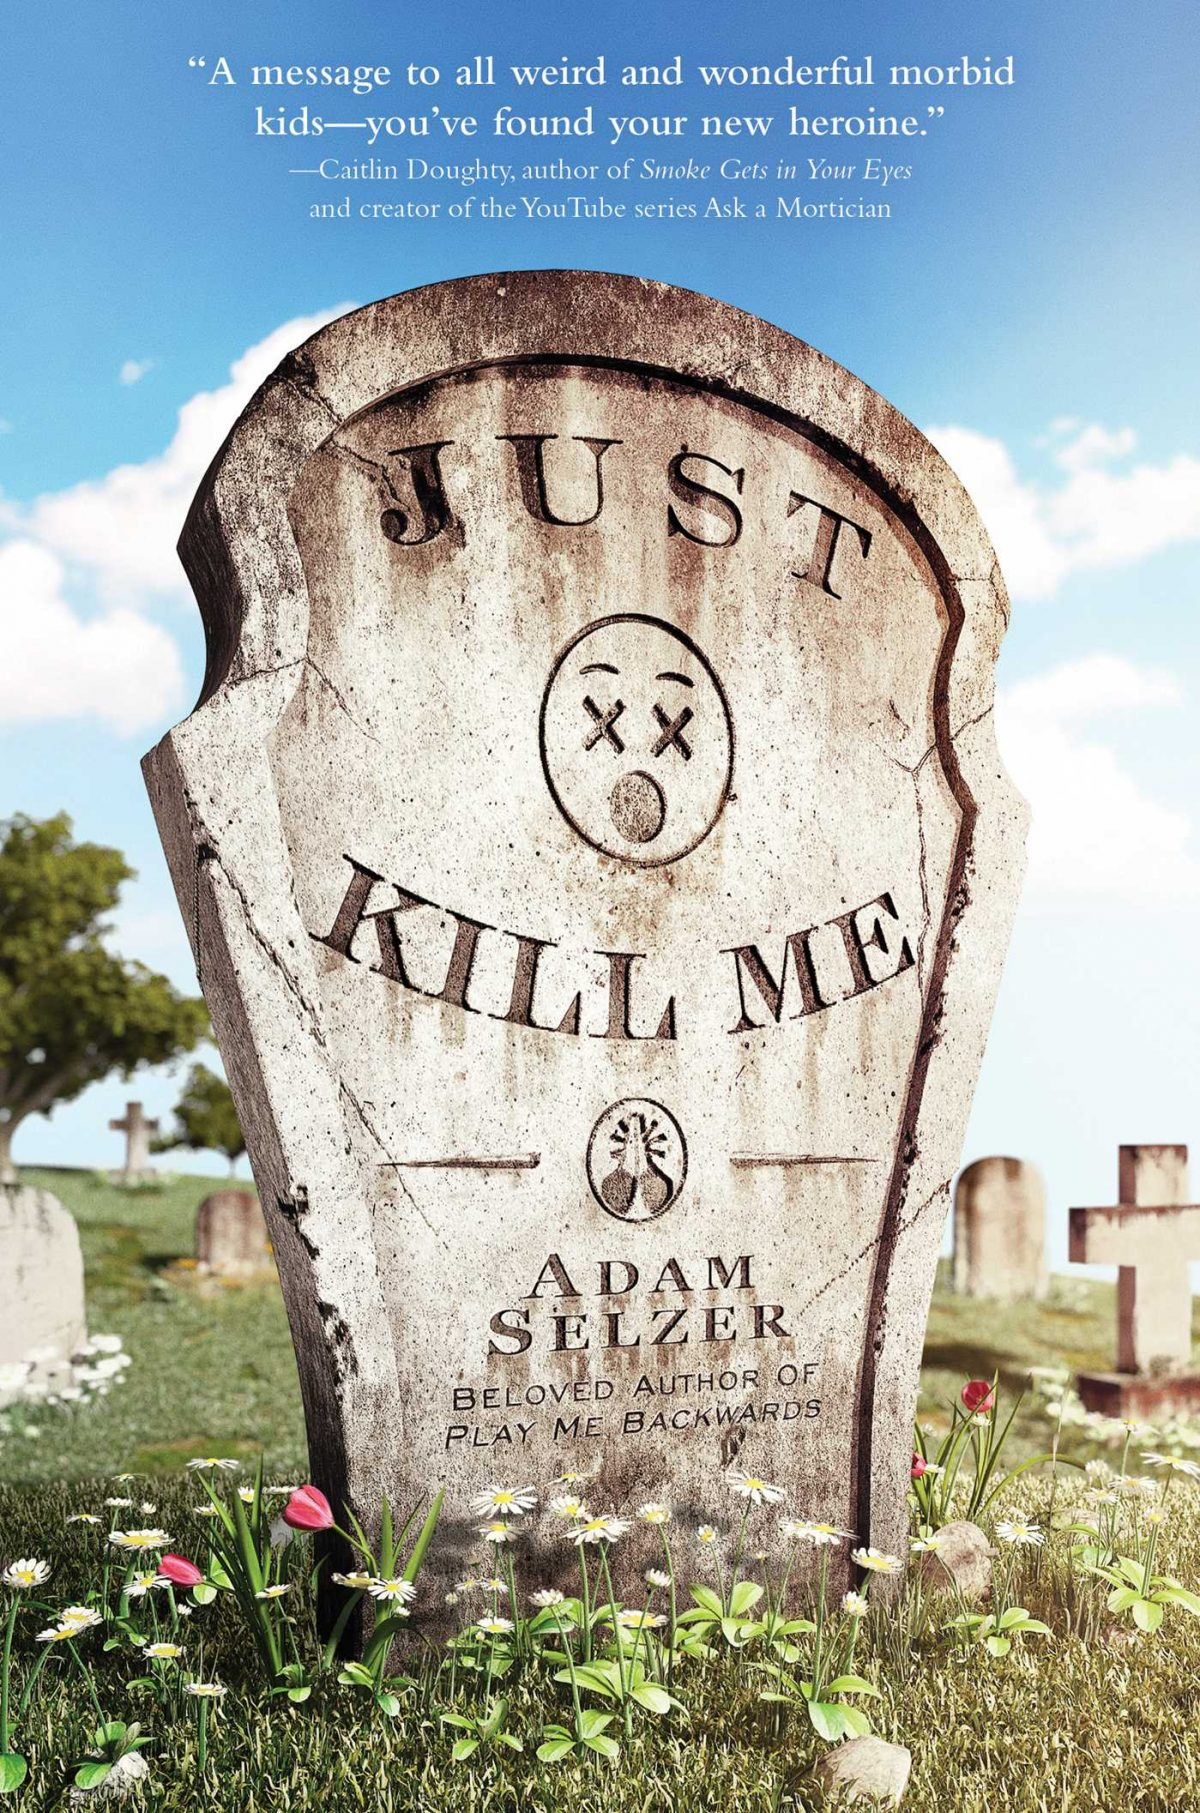 A tombstone with the title on it.